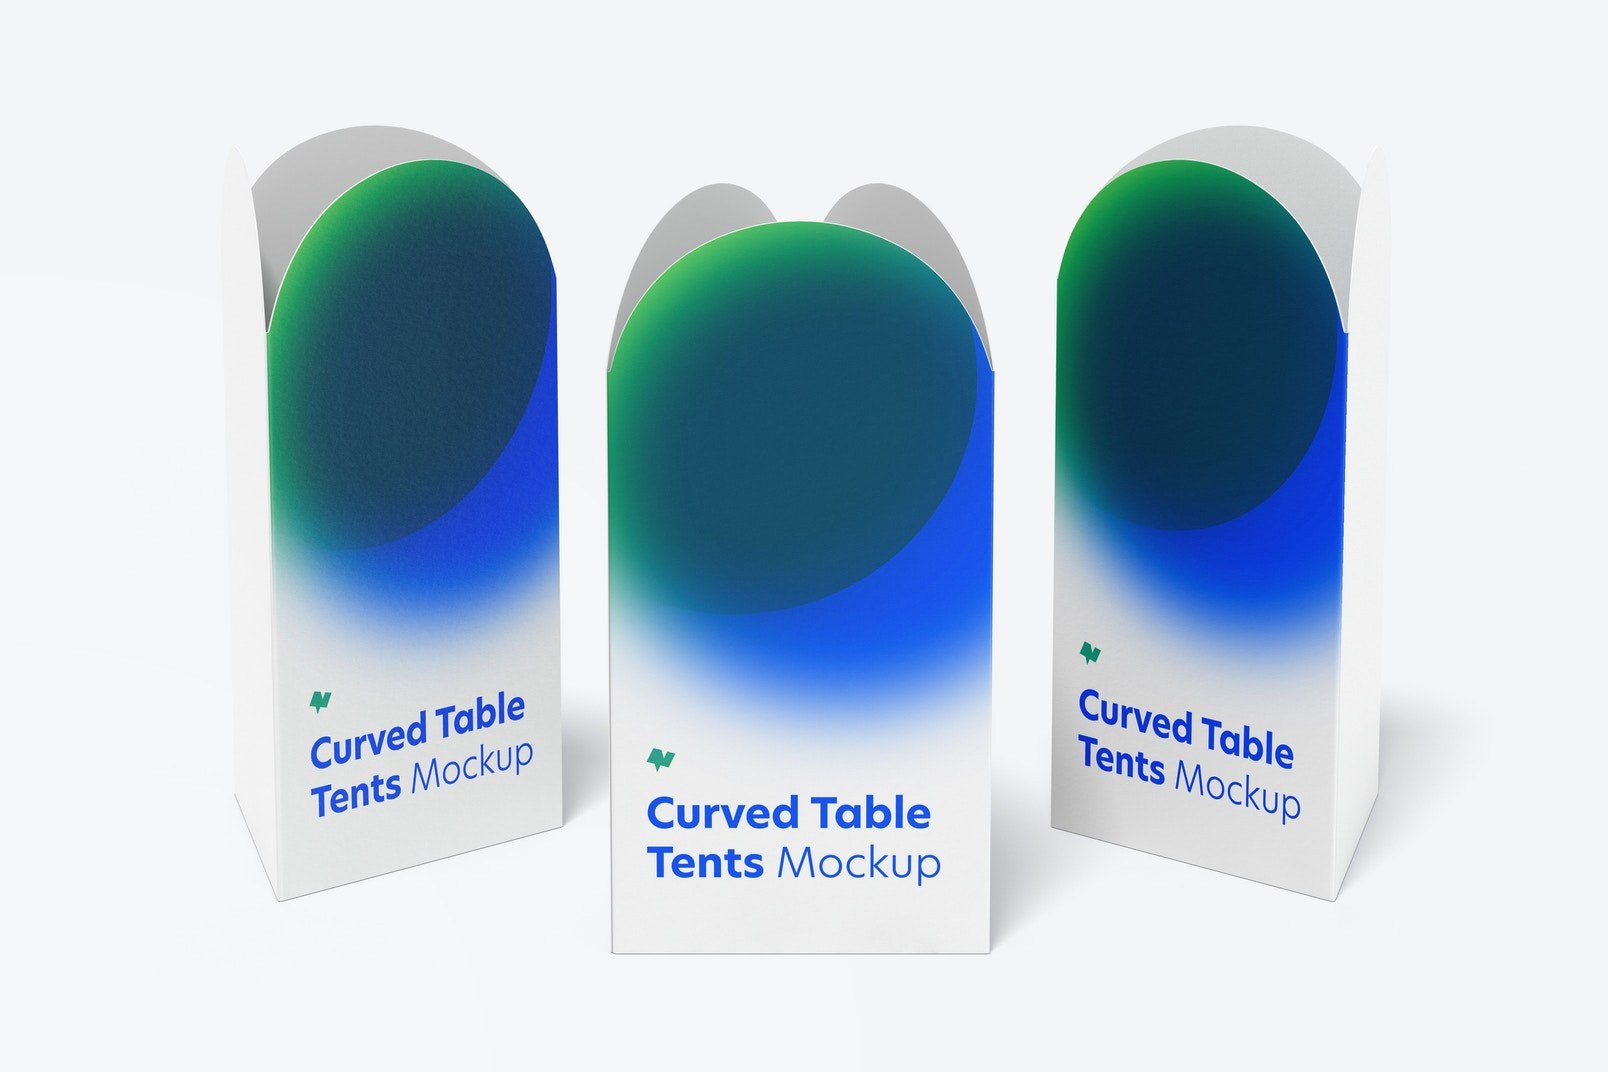 Curved Top Table Tents Set Mockup